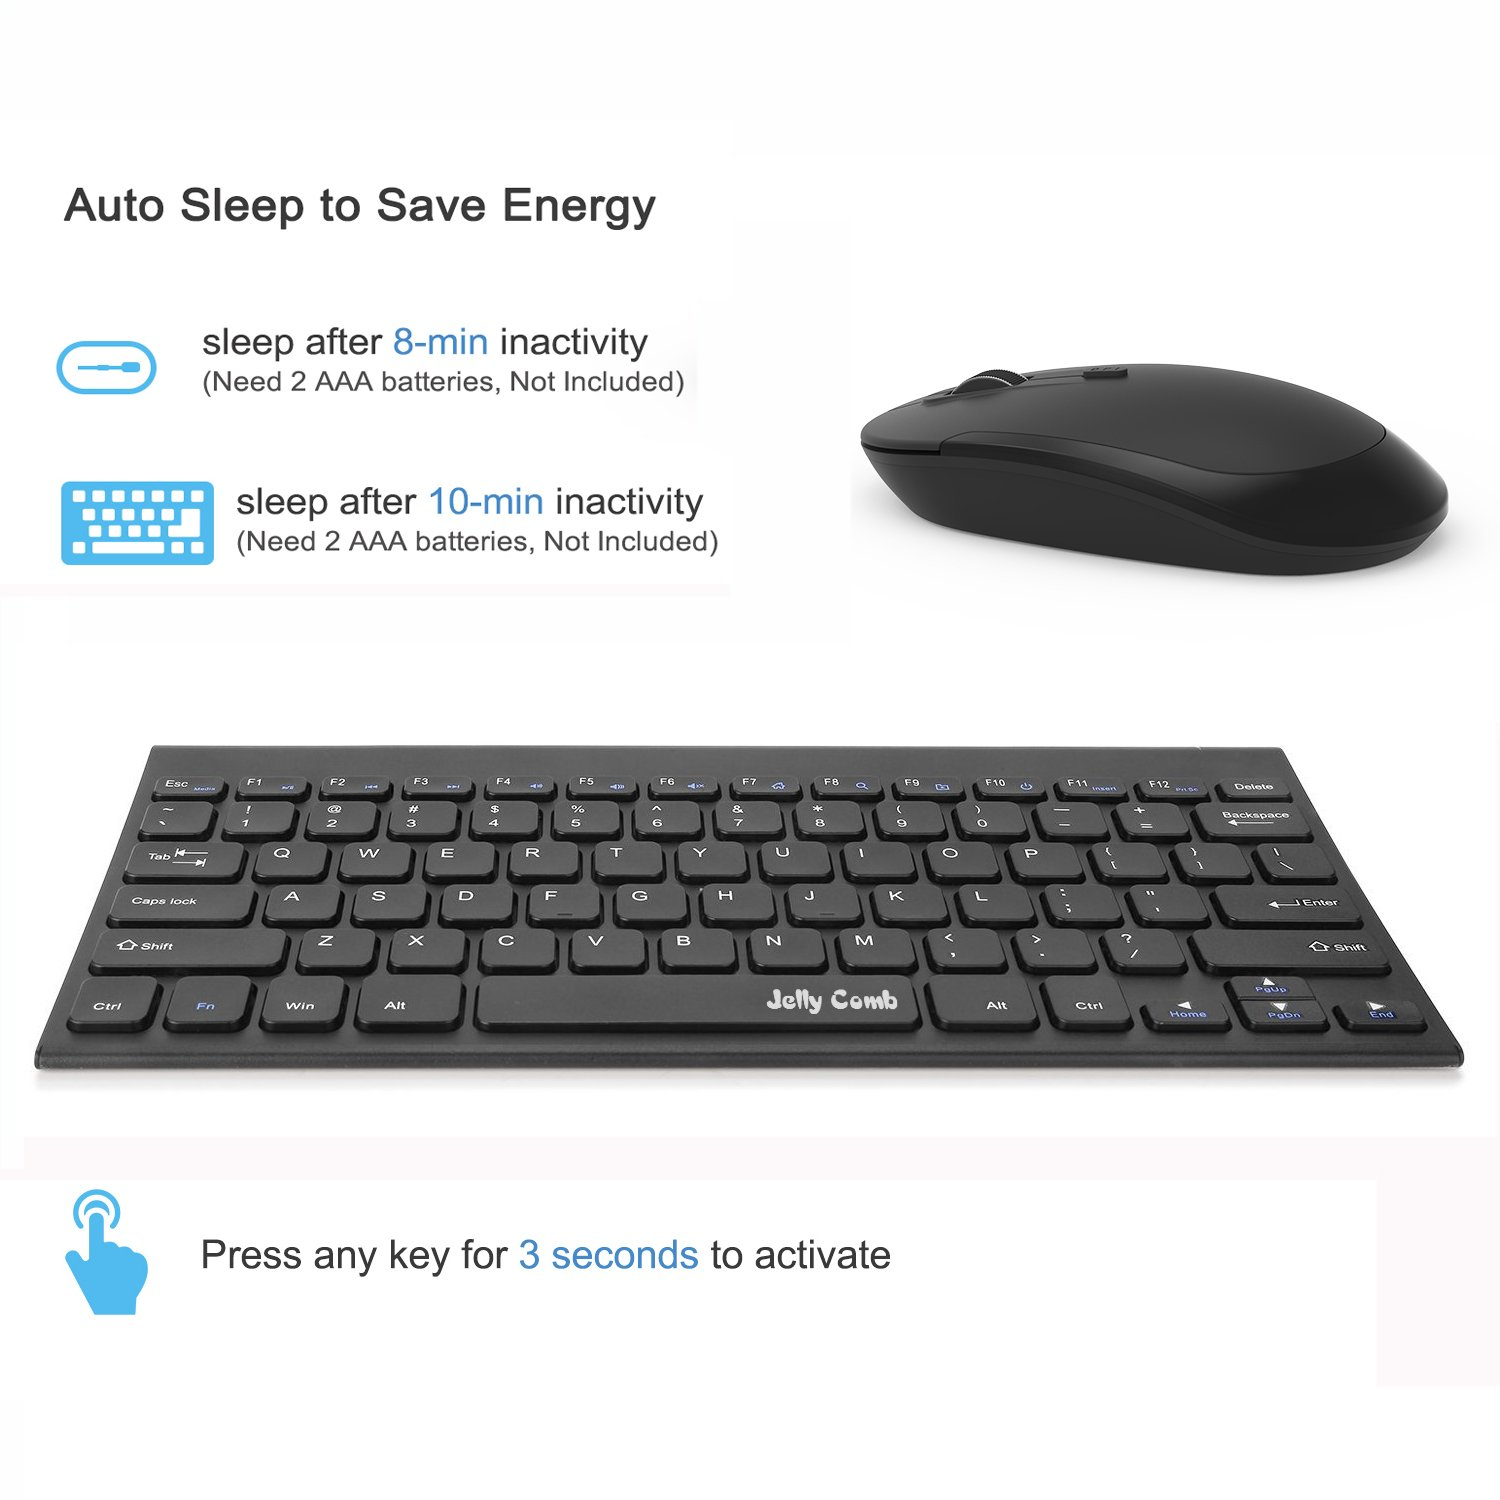 Wireless Keyboard Mouse, Jelly Comb 2.4GHz Ultra Thin Compact Portable SMALL Wireless Keyboard and Mouse Combo Set for PC, Desktop, Computer, Notebook, Laptop, Windows XP/Vista / 7/8 / 10 - Black by Jelly Comb (Image #4)